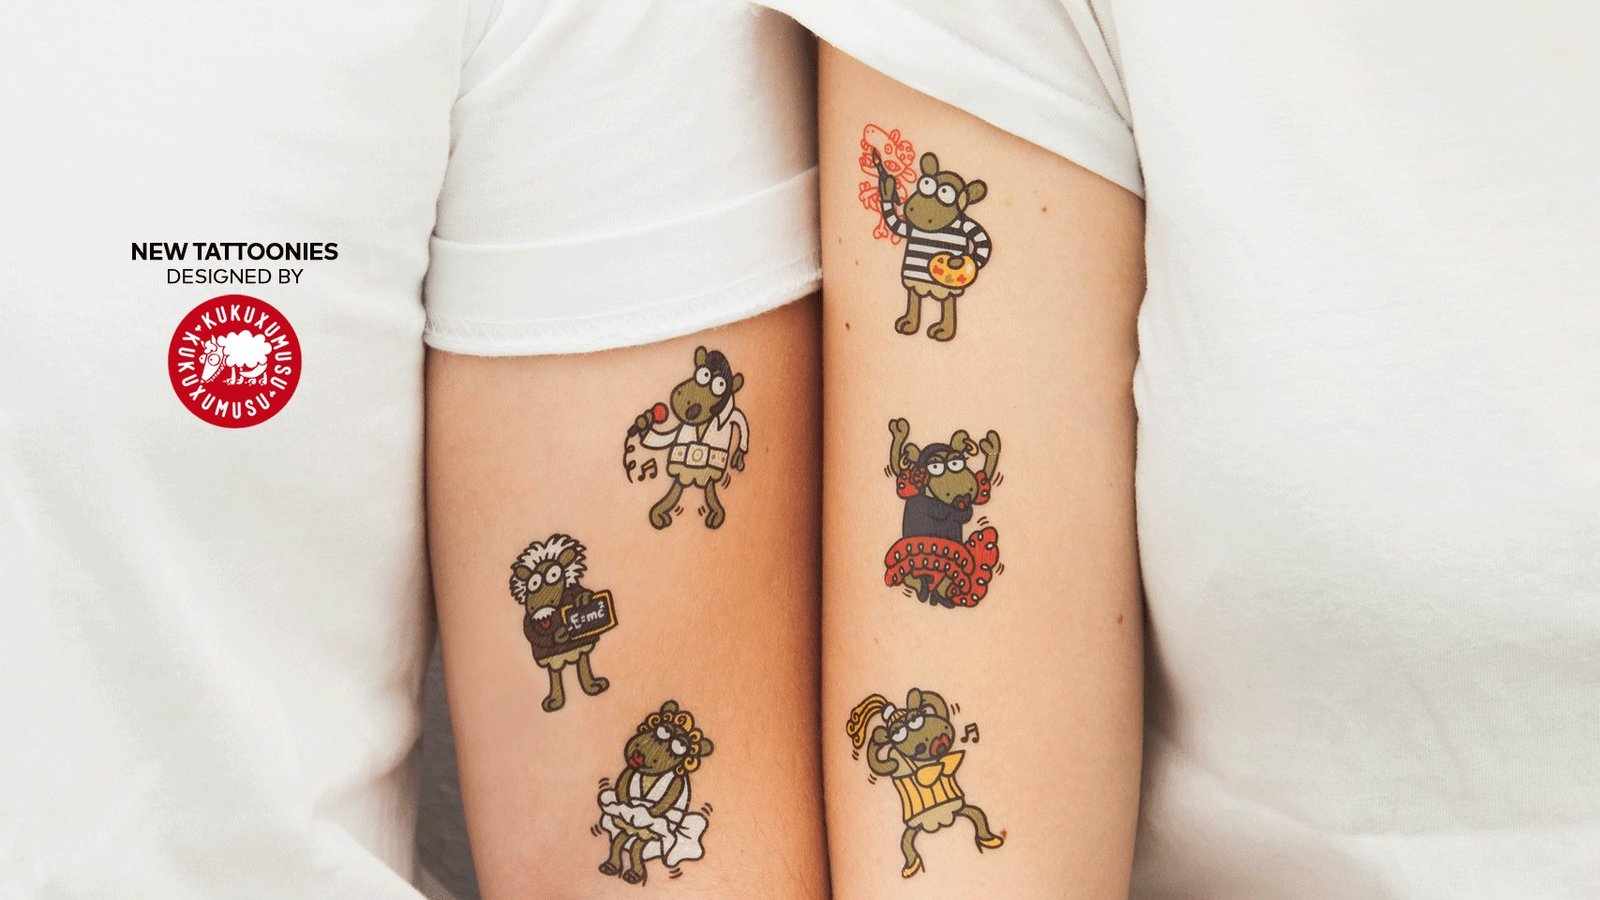 loro tattoonie temporary tattoos